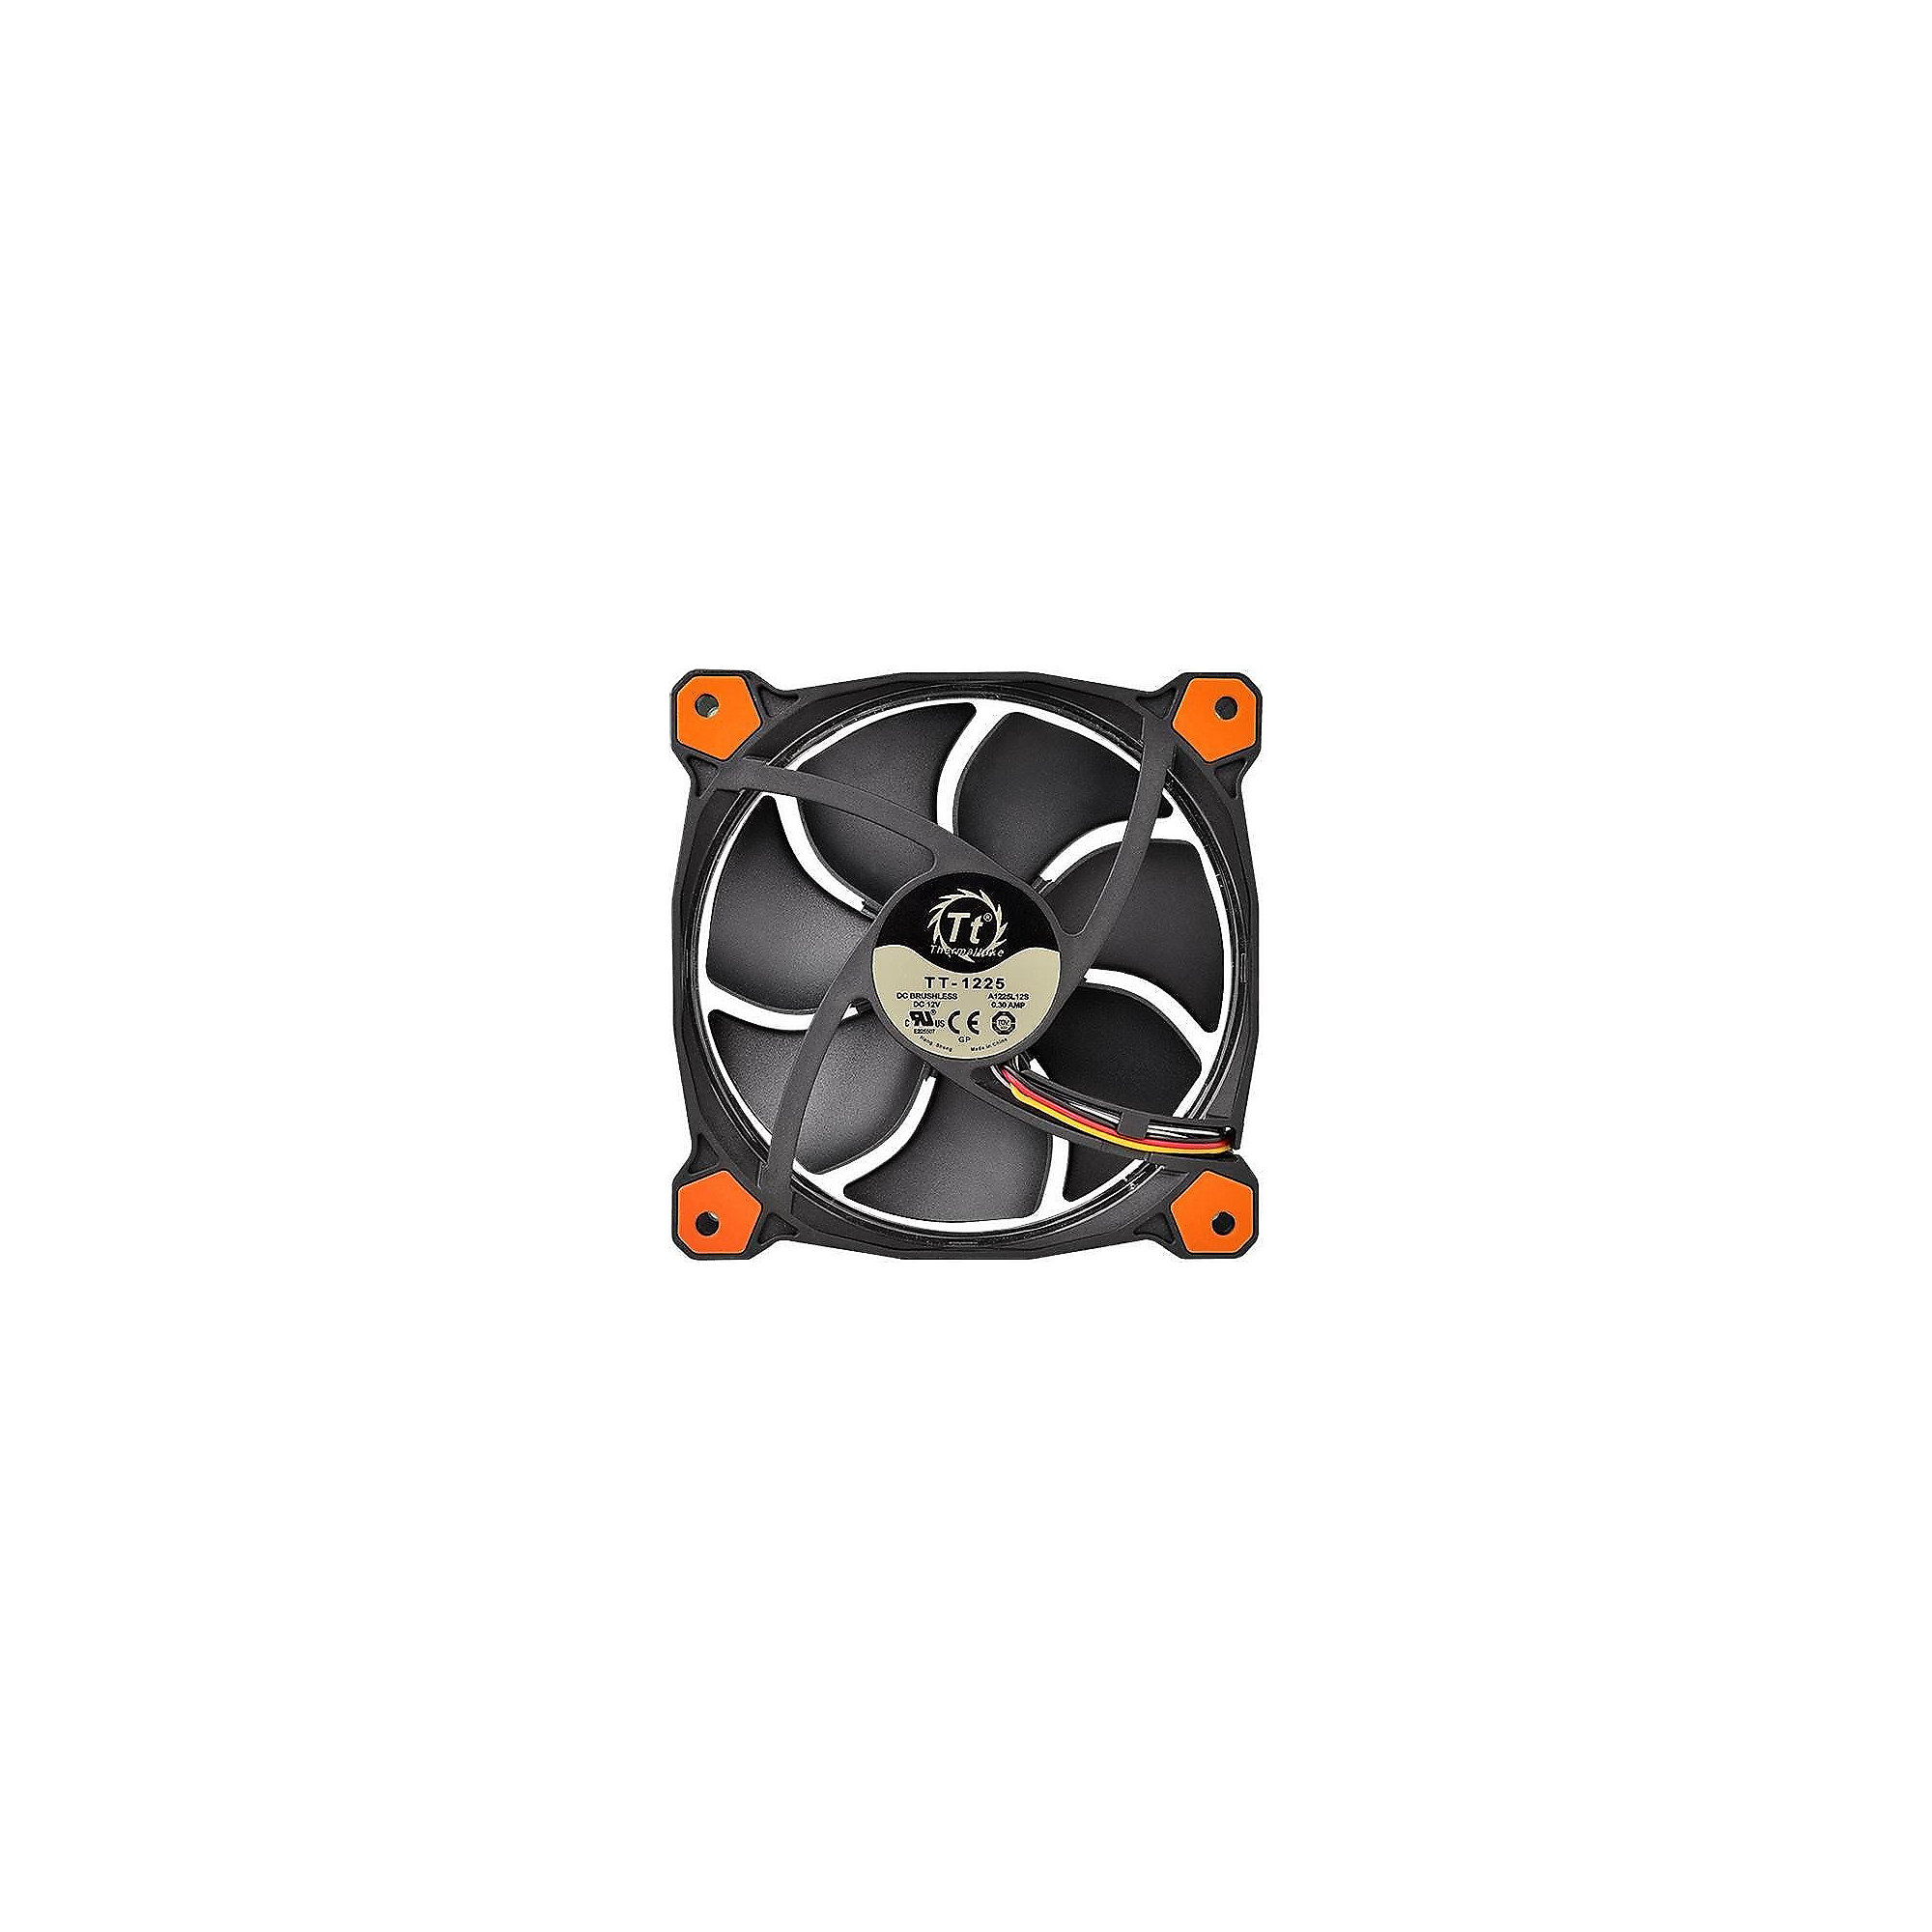 Thermaltake Riing 14 LED orange Gehäuselüfter 140x140x25mm 1000/1400upm